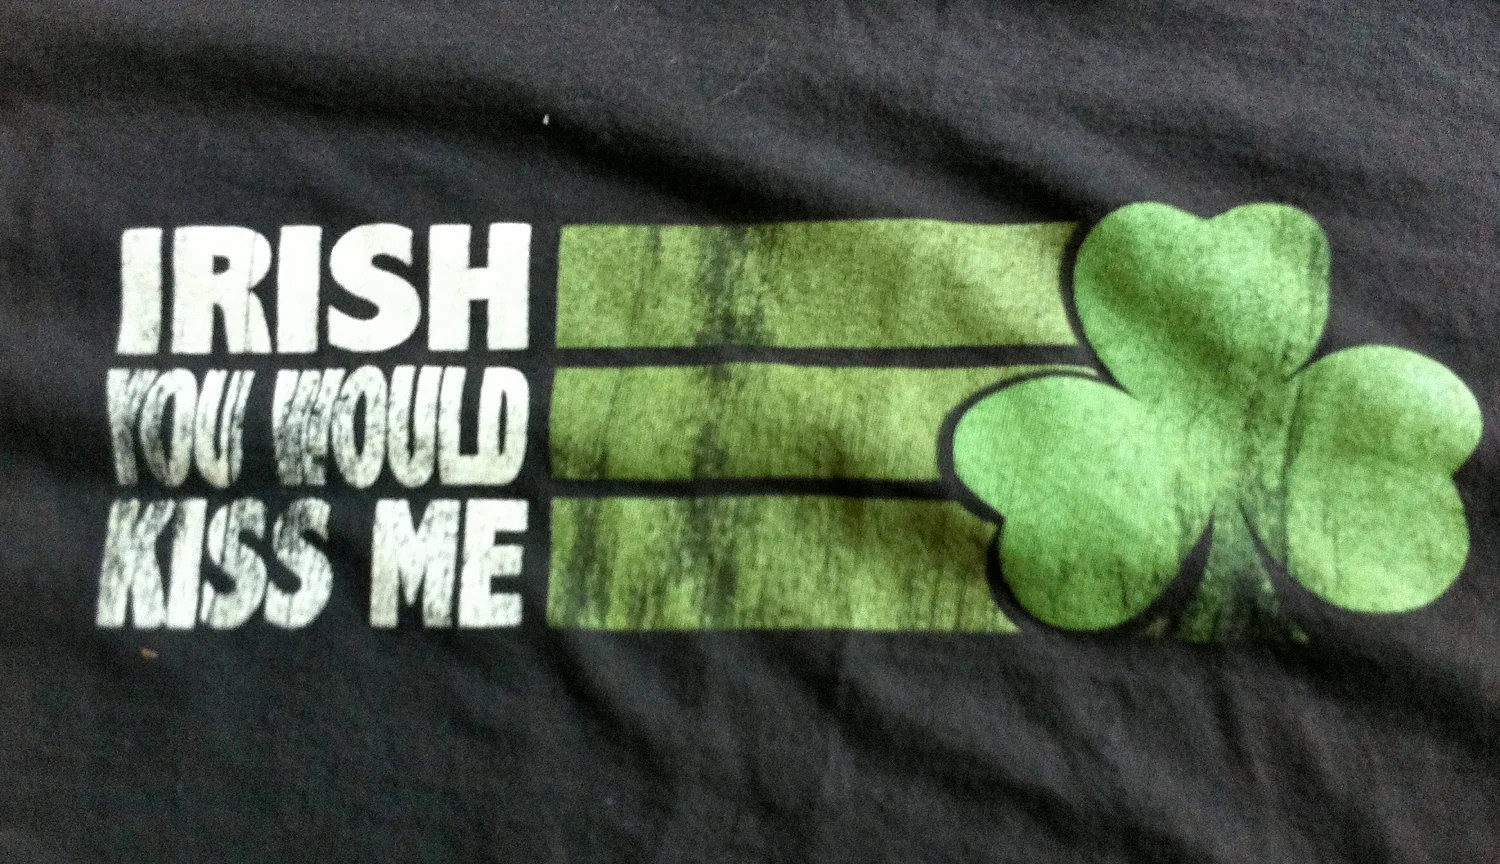 Reserved - Tumblewee Giveaway -Upcycled Irish You Would Kiss Me